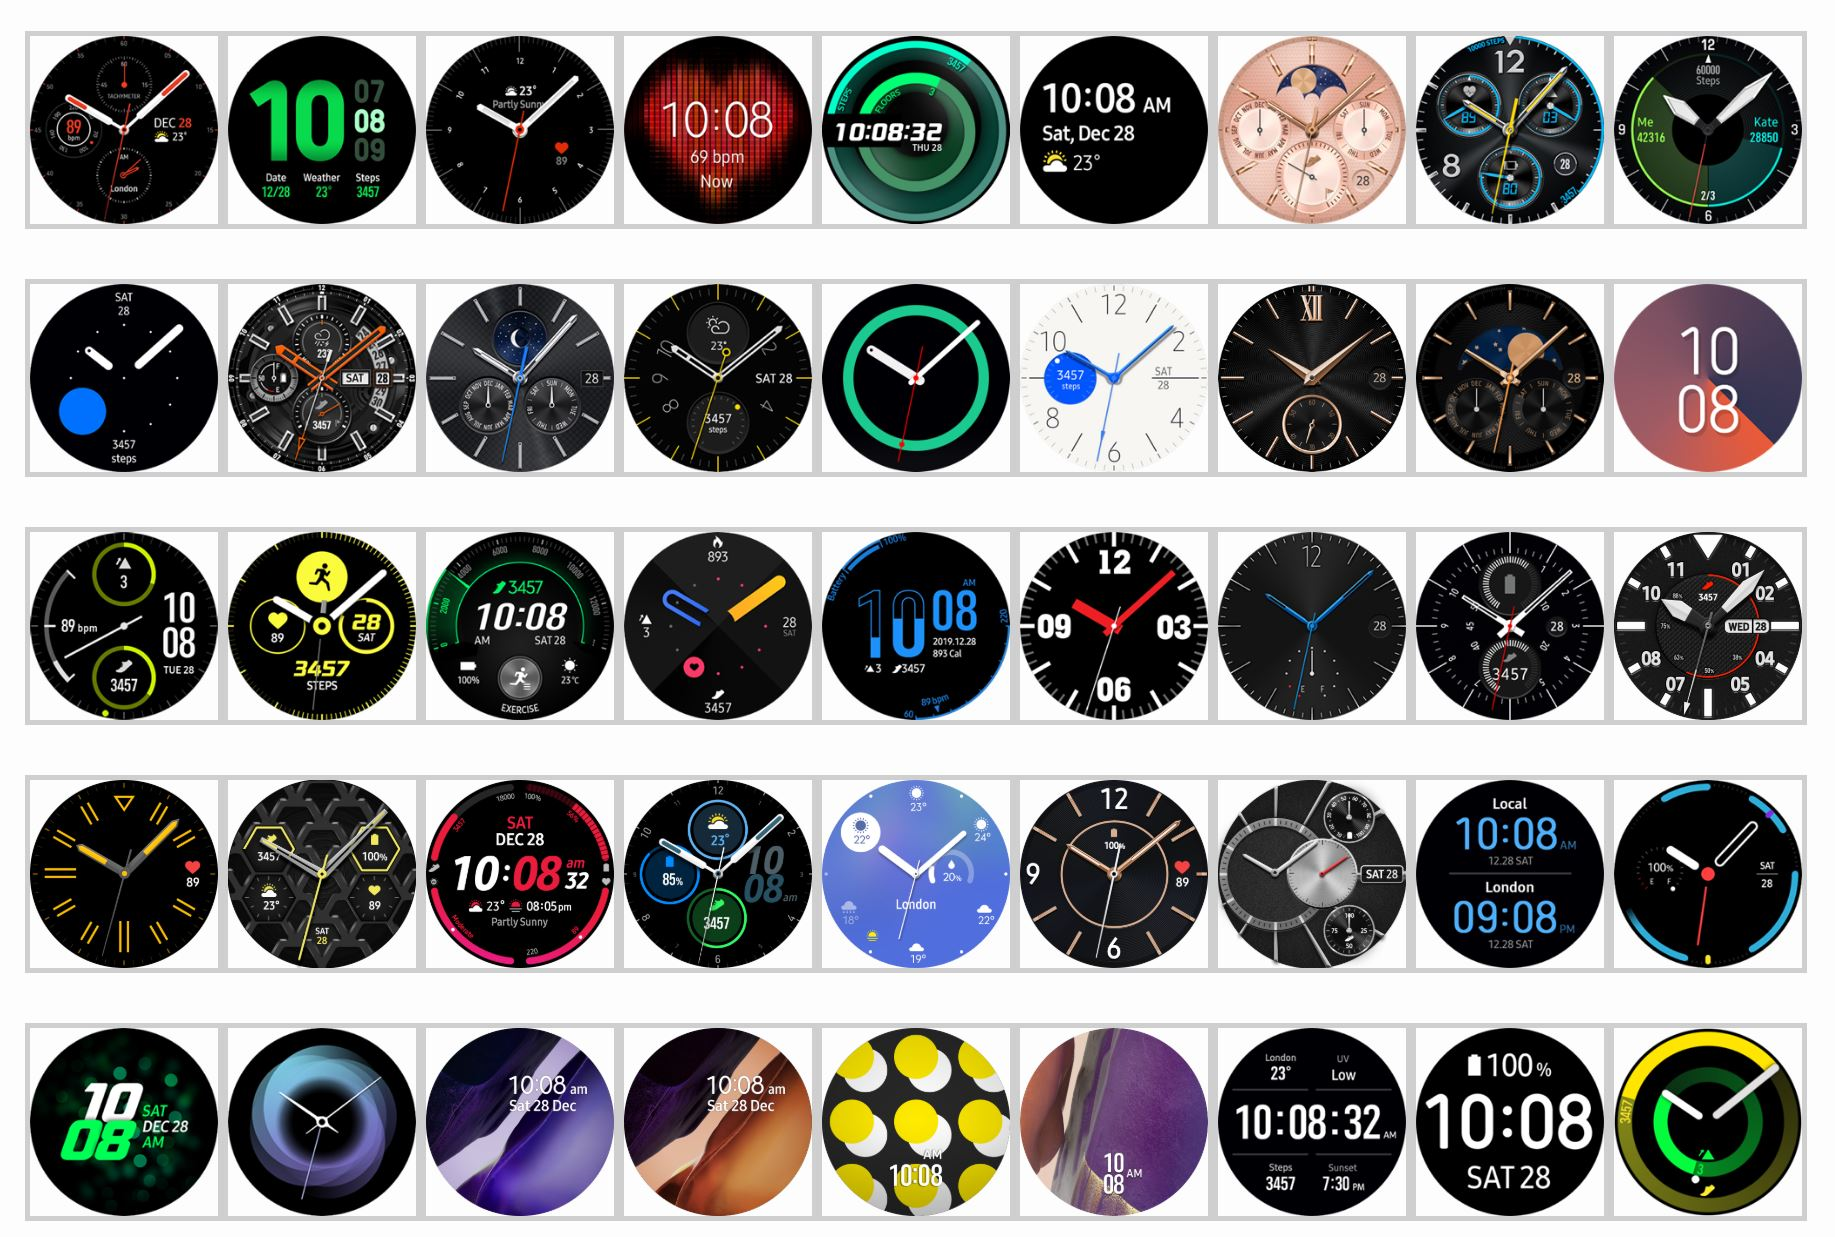 Samsung Galaxy 3 watch faces Samsung Galaxy Watch 3 App Adds Range Of New Gestures